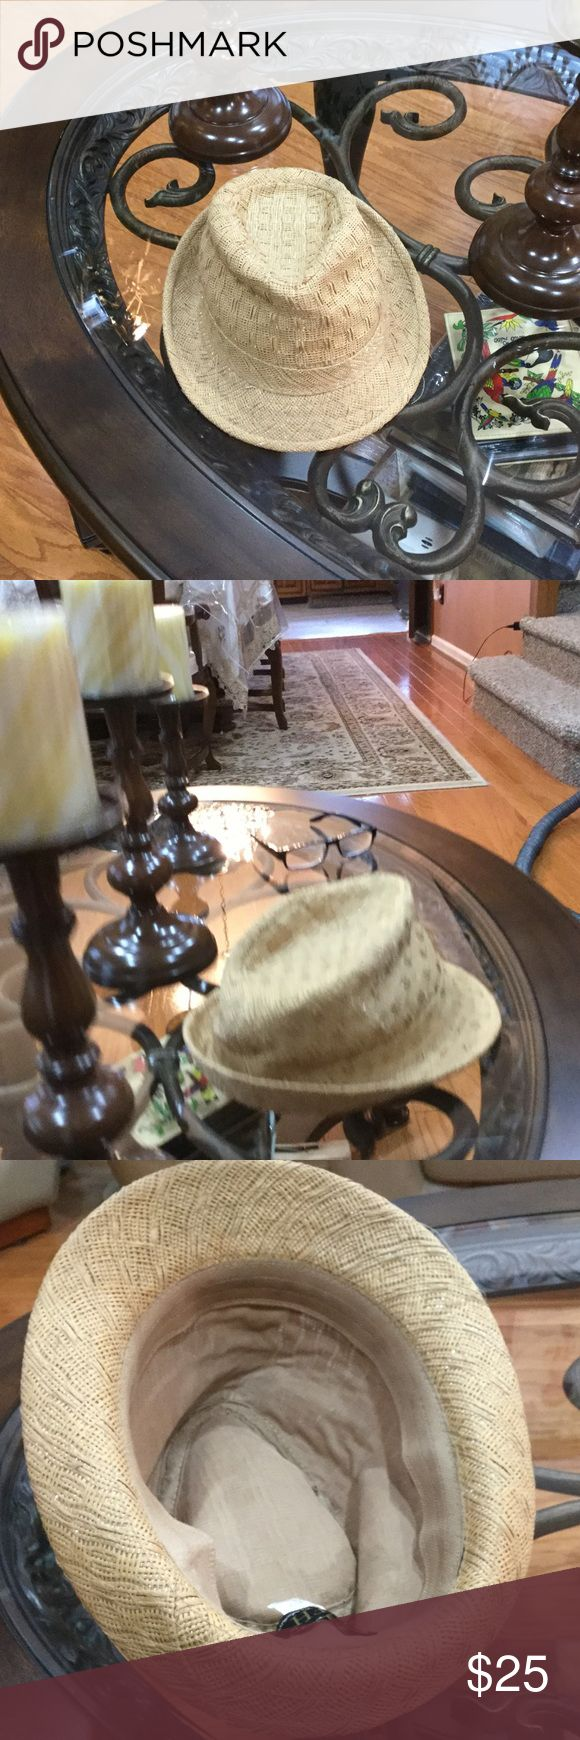 Hipster hat Woven hat great for those fall days Accessories Hats